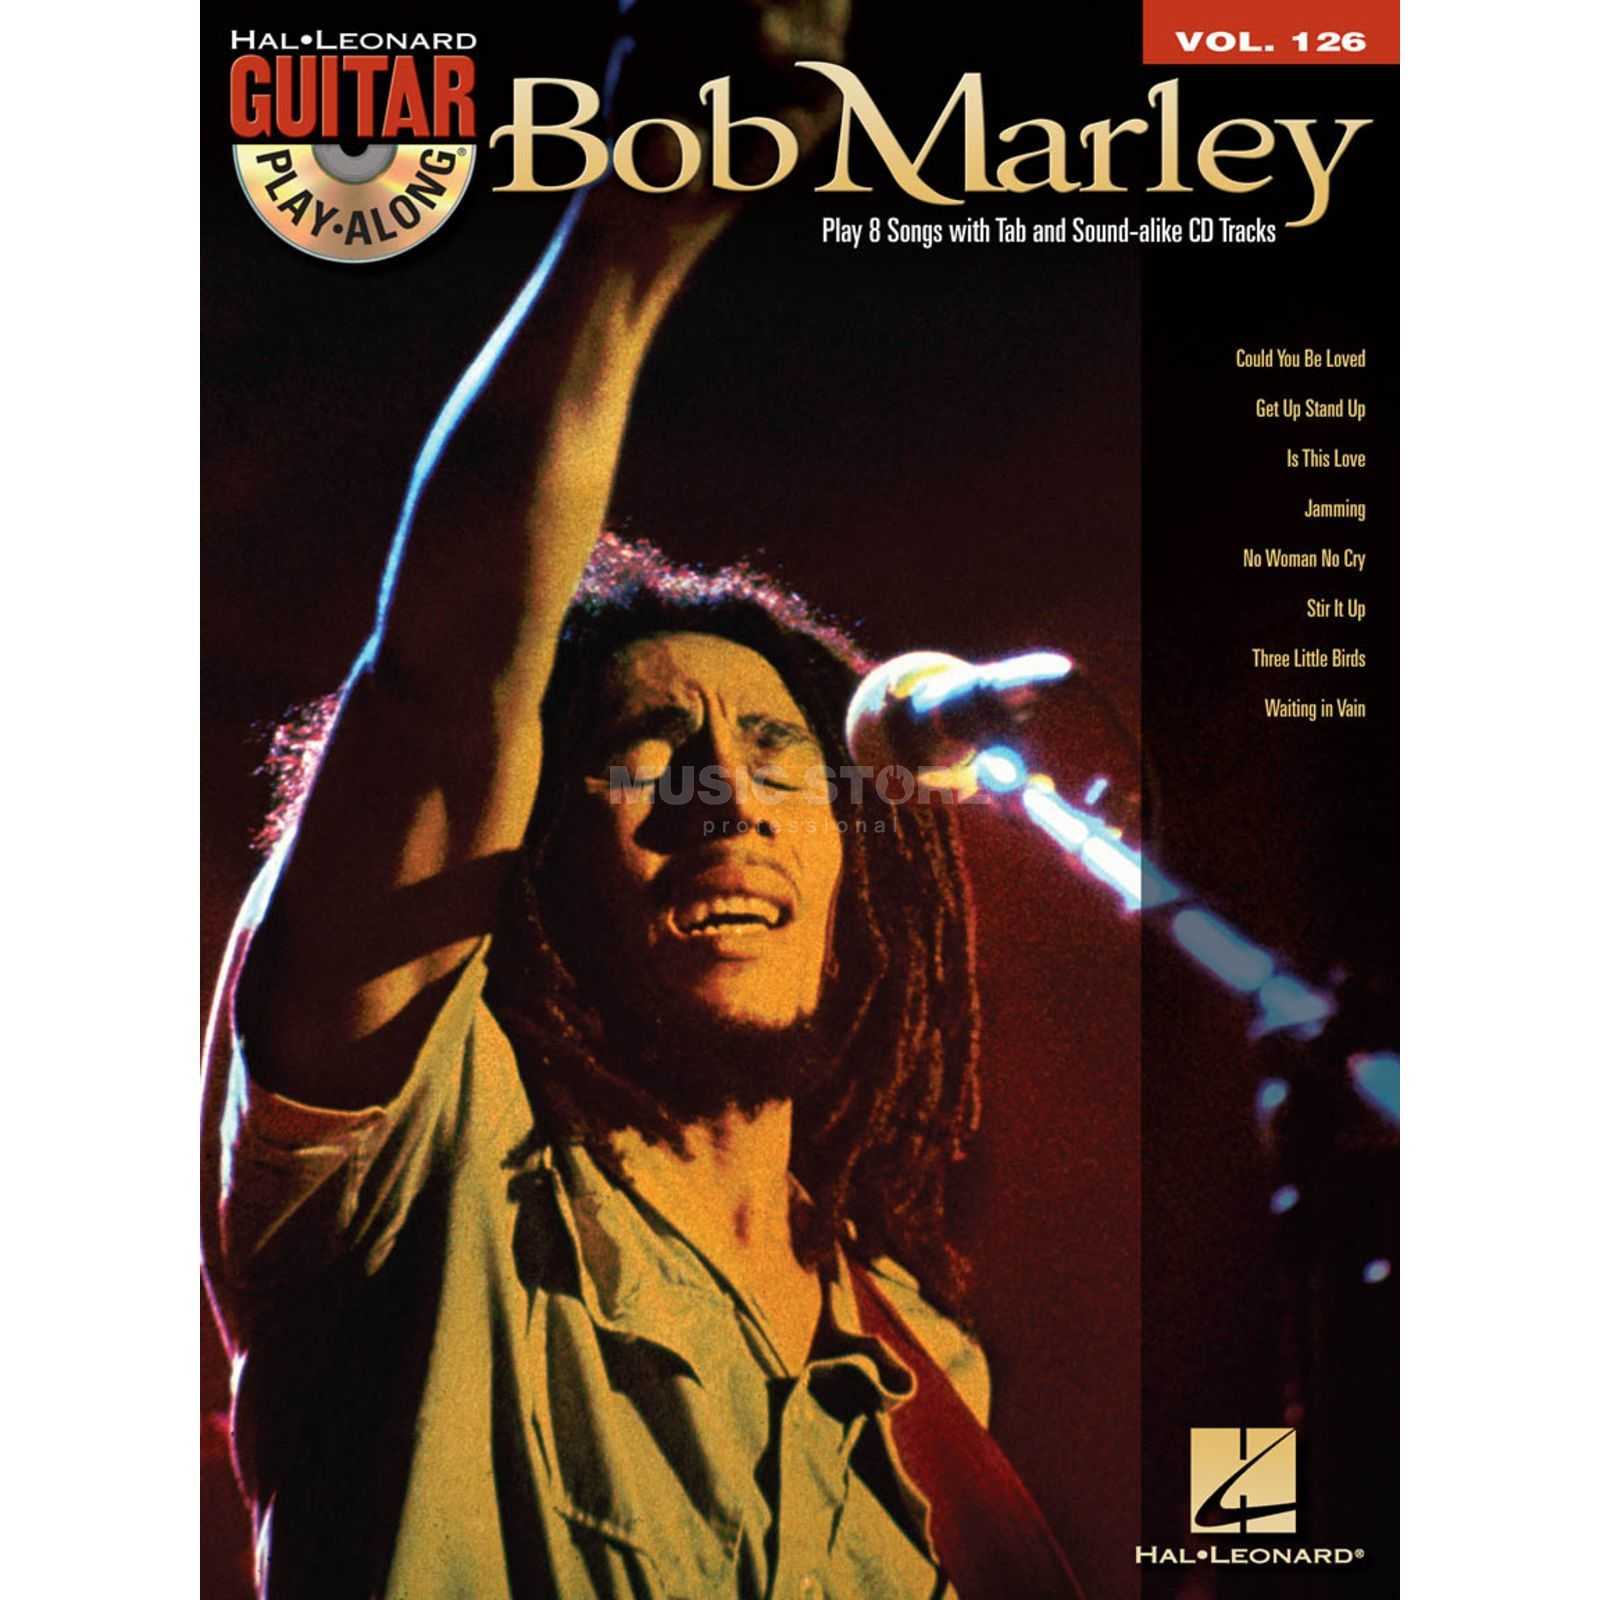 Hal Leonard Guitar Play-Along: Bob Marley Vol. 126, TAB und CD Produktbild